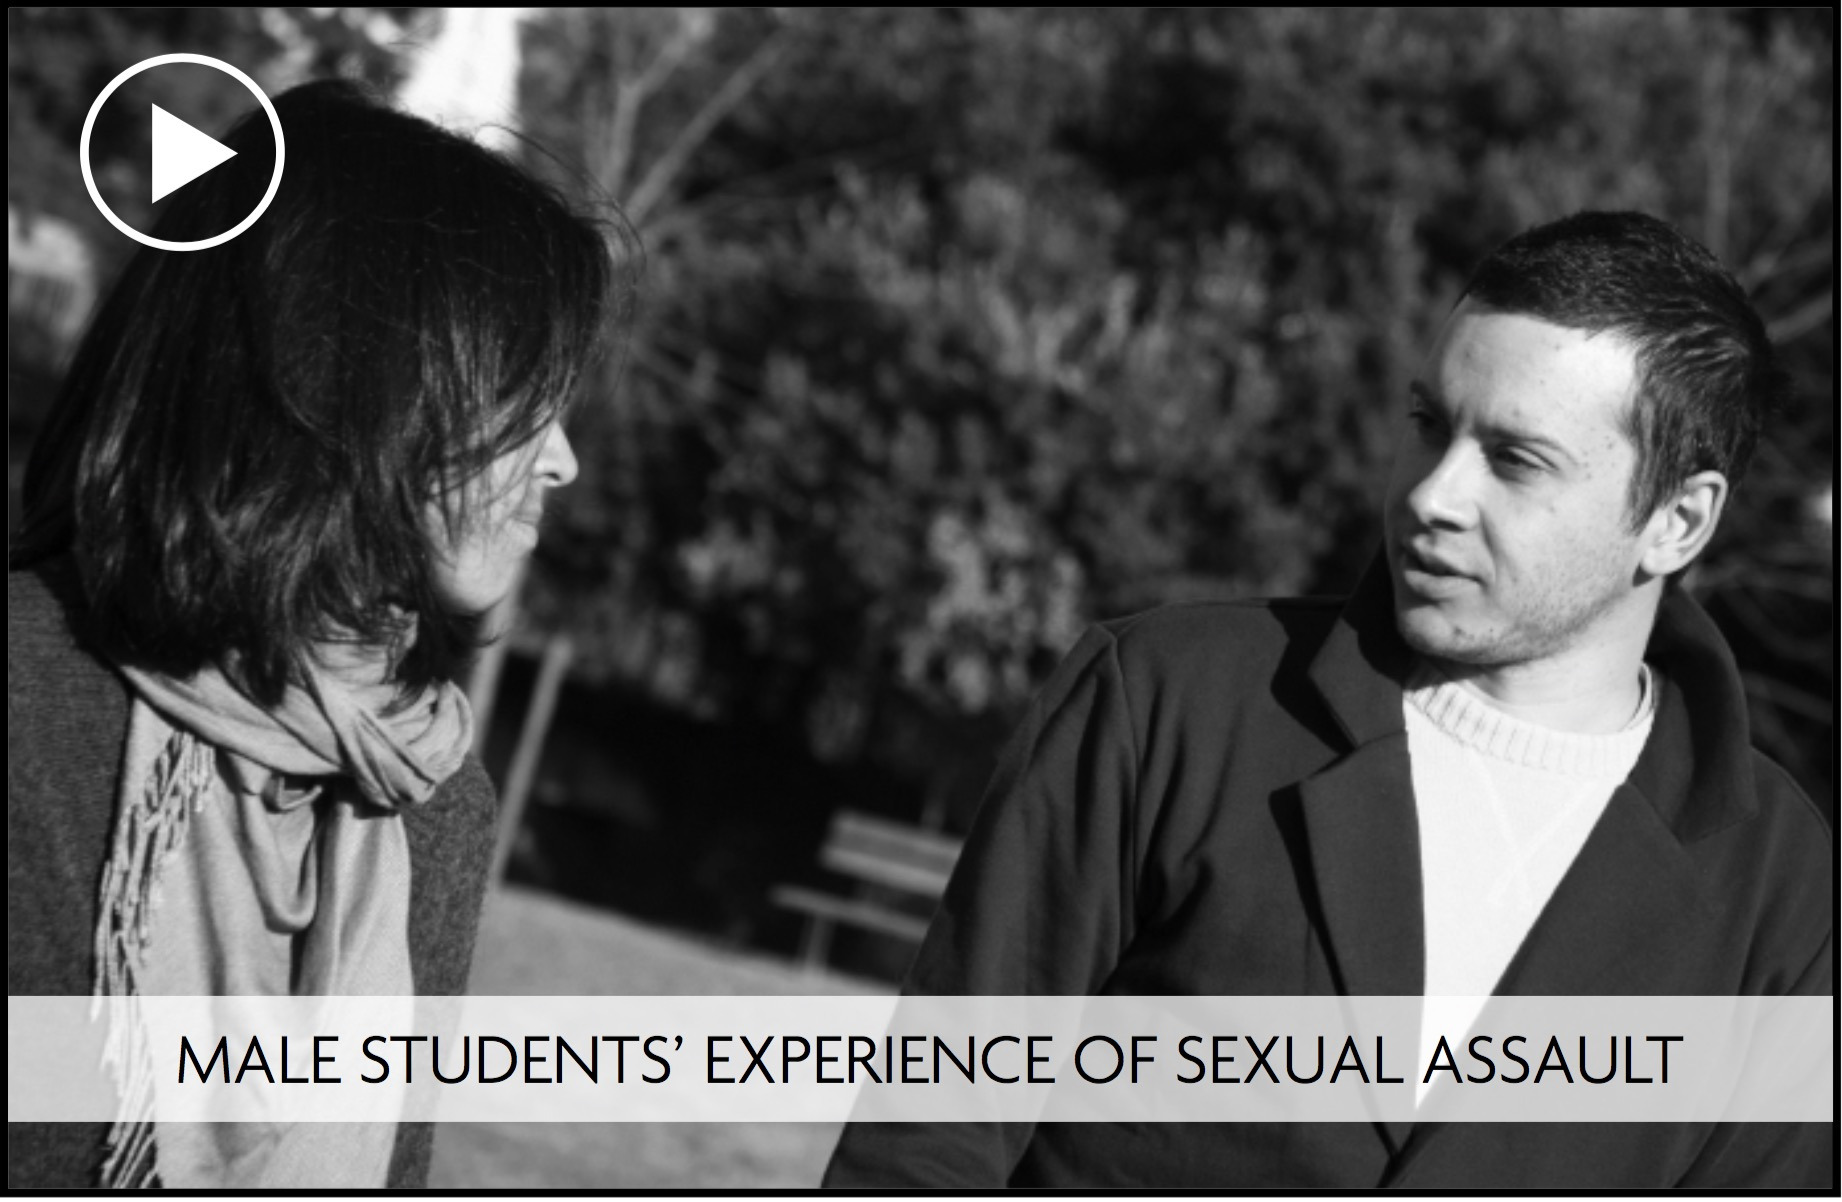 Slideshow: Male students' experience of sexual assault